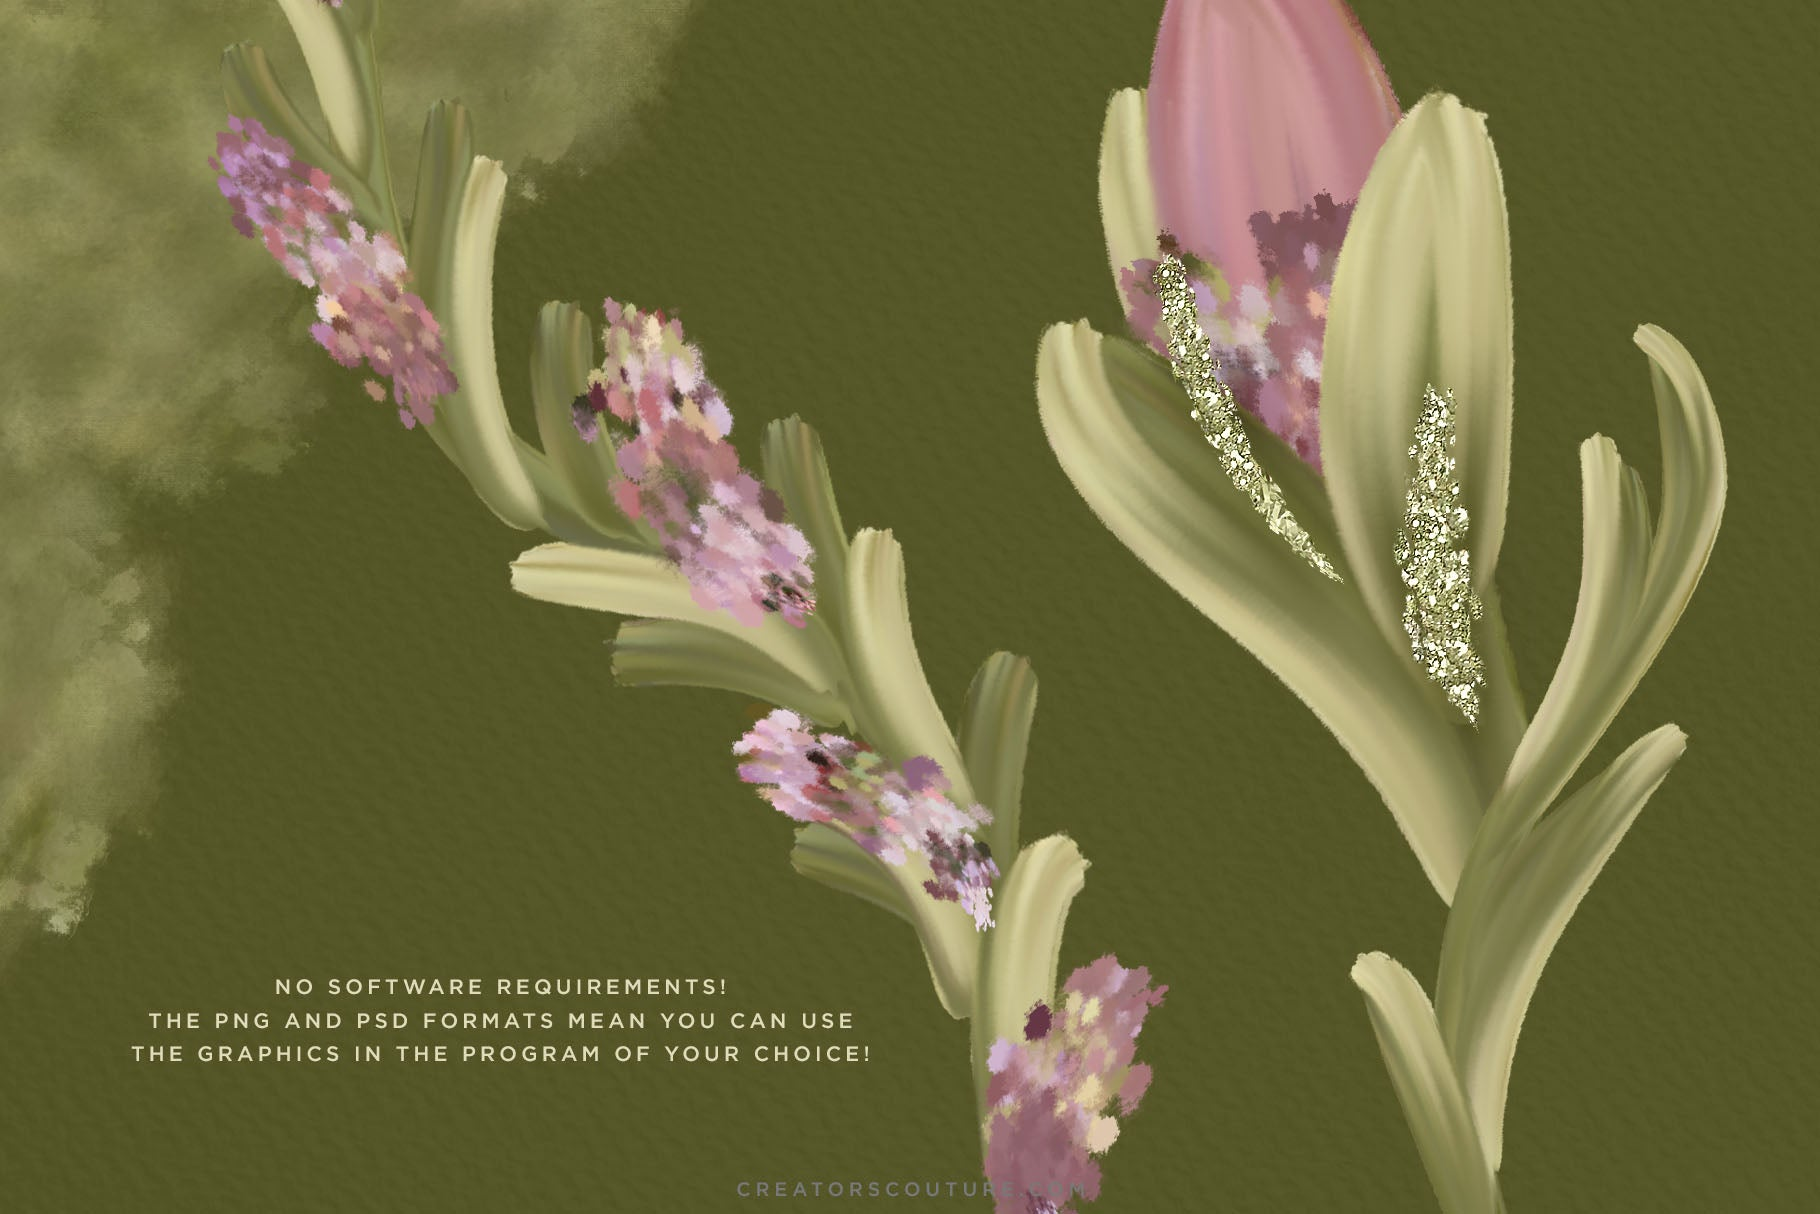 Delicate Mauve Spring Floral Illustrations & Watercolor Textures - Creators Couture